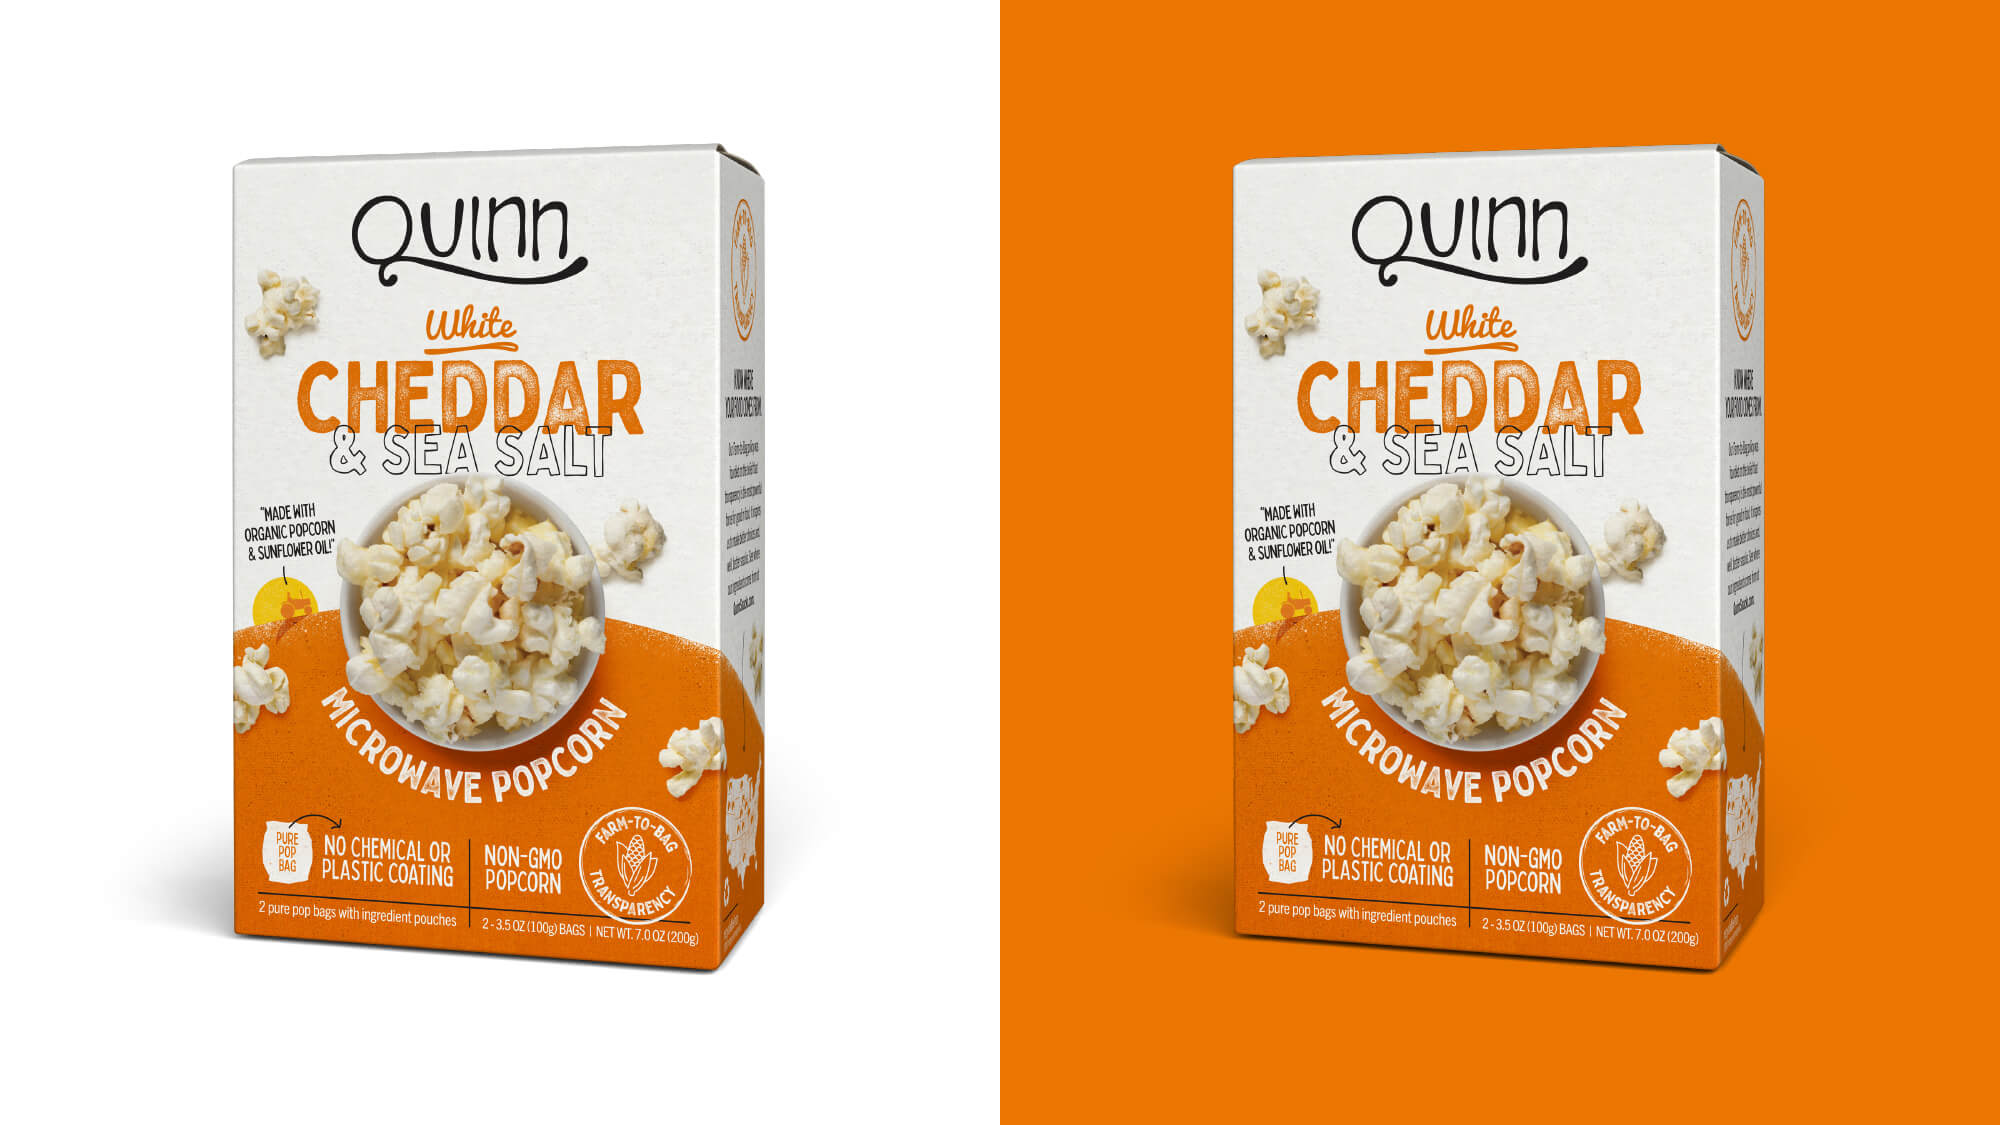 Quinn Popcorn Packaging - White Cheddar